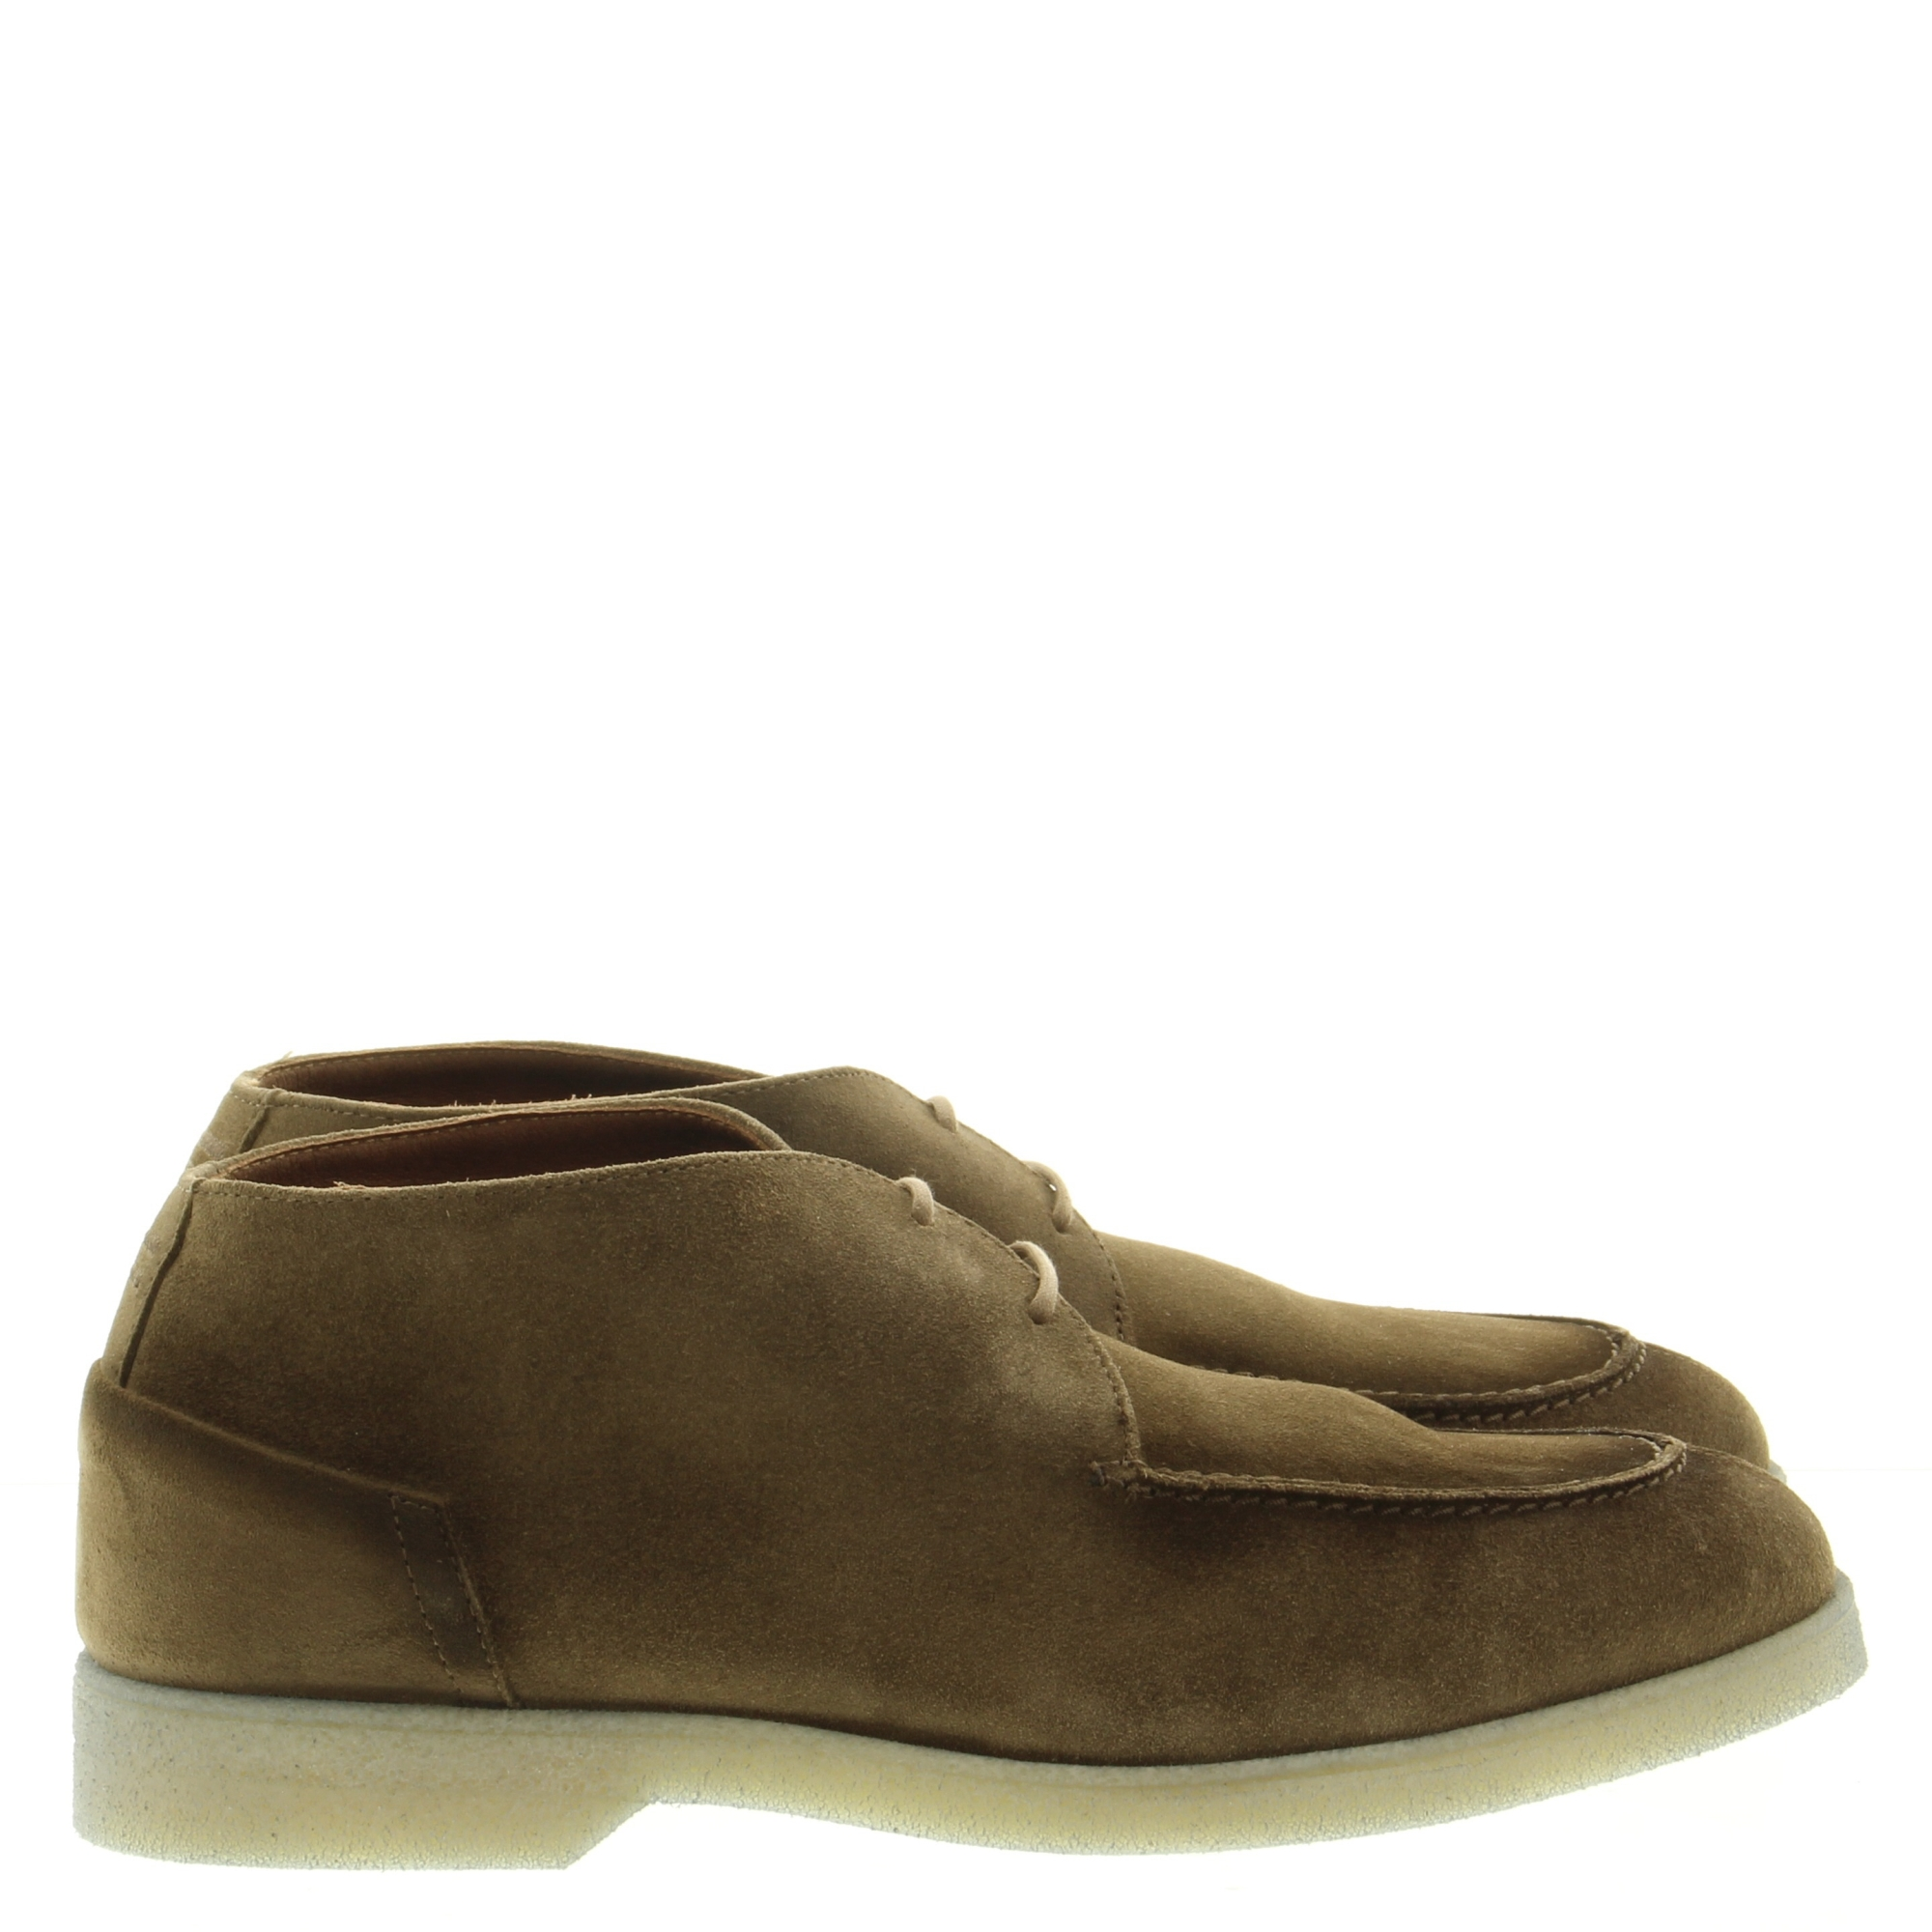 Greve 1166.04 Tufo 3099 Cocco Florence